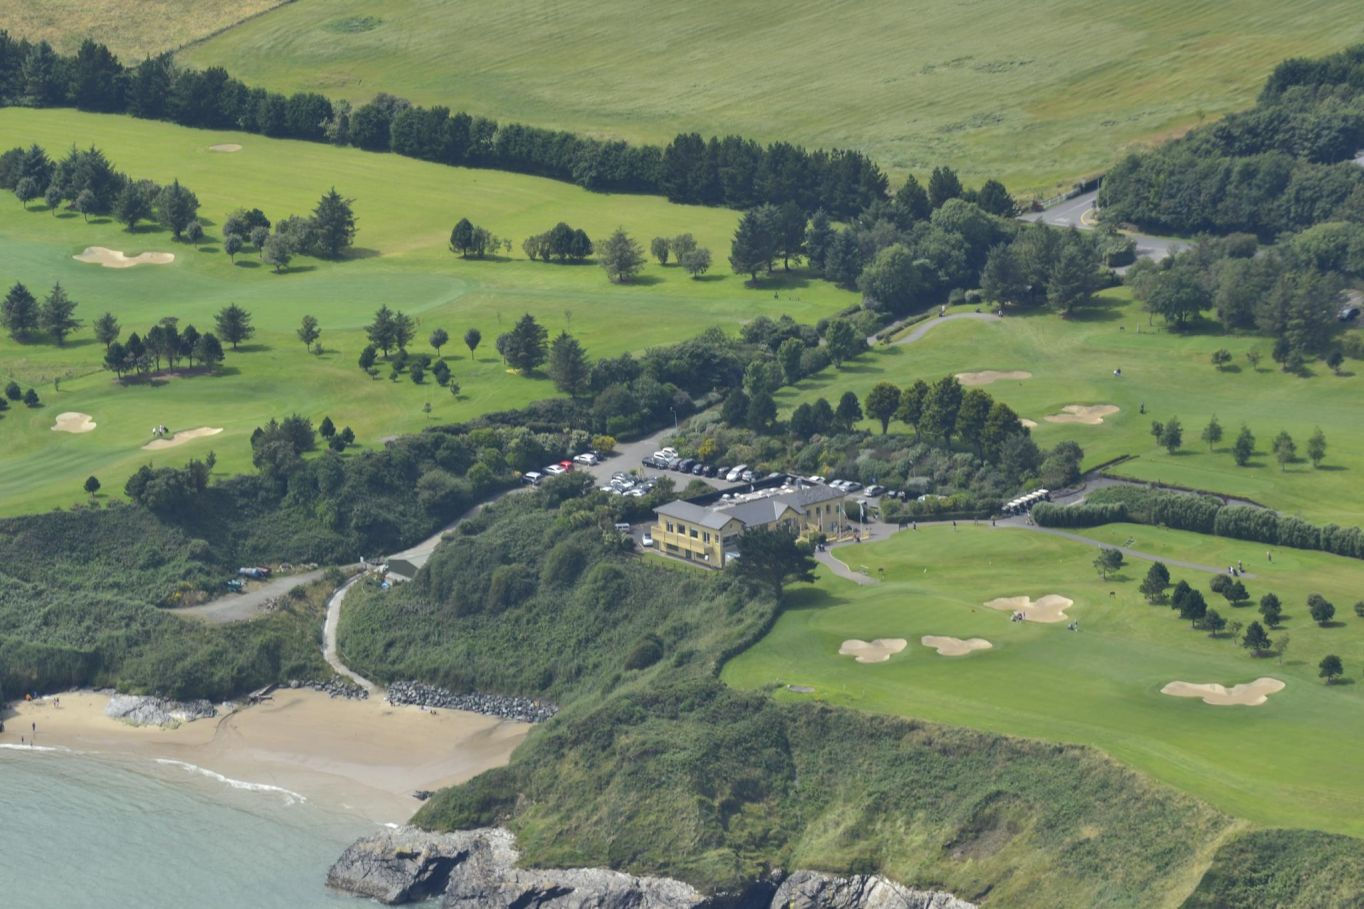 Blainroe Golf Club